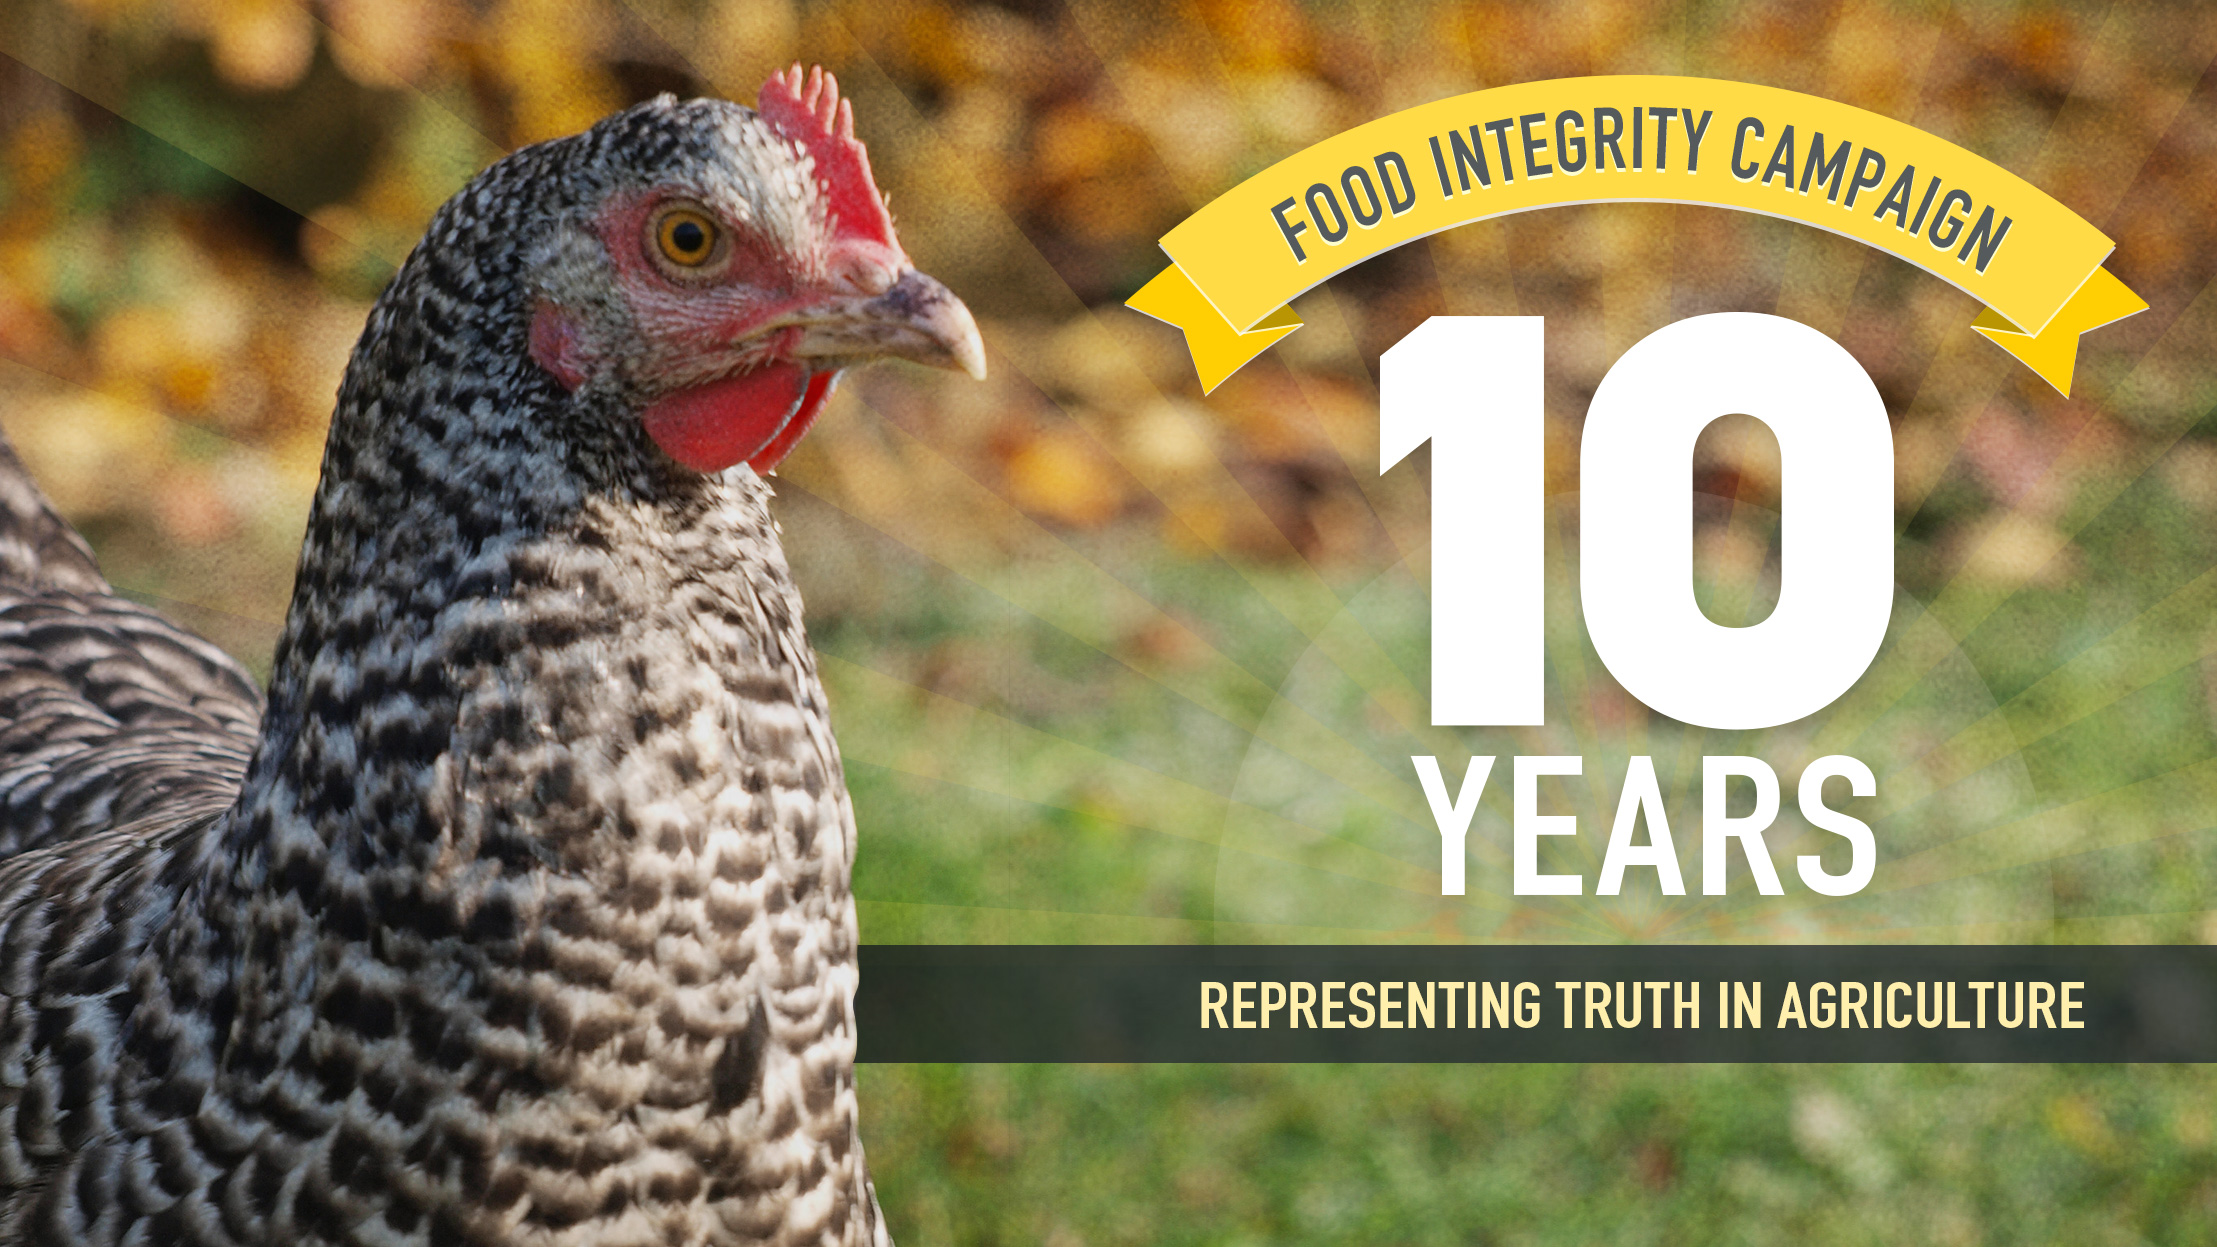 Photo of a bold, speckled hen and text that reads: Food Integrity Campaign, 10 Years, Representing Truth in Agriculture